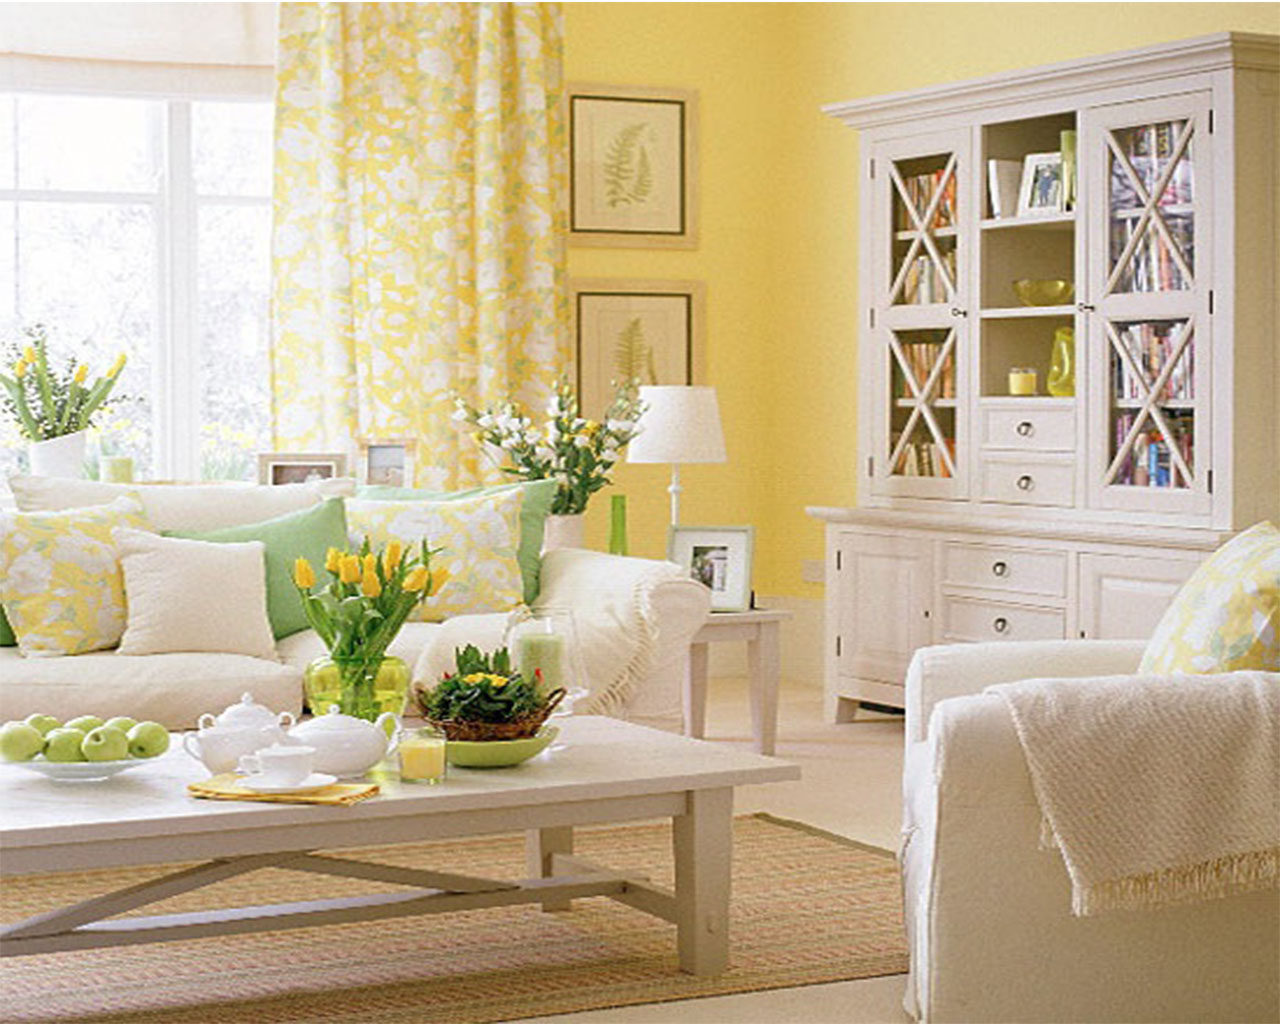 Welcome Spring Try These Tips To Make Your Springsmell. Modern Wallpaper Ideas For Living Room. Modern Curtains For Living Room. Formal Living Room Furniture. Living Dining Room Designs. Design Small Apartment Living Room. Cheap Furniture Ideas For Living Room. London Living Room Ideas. Best Color For Living Room